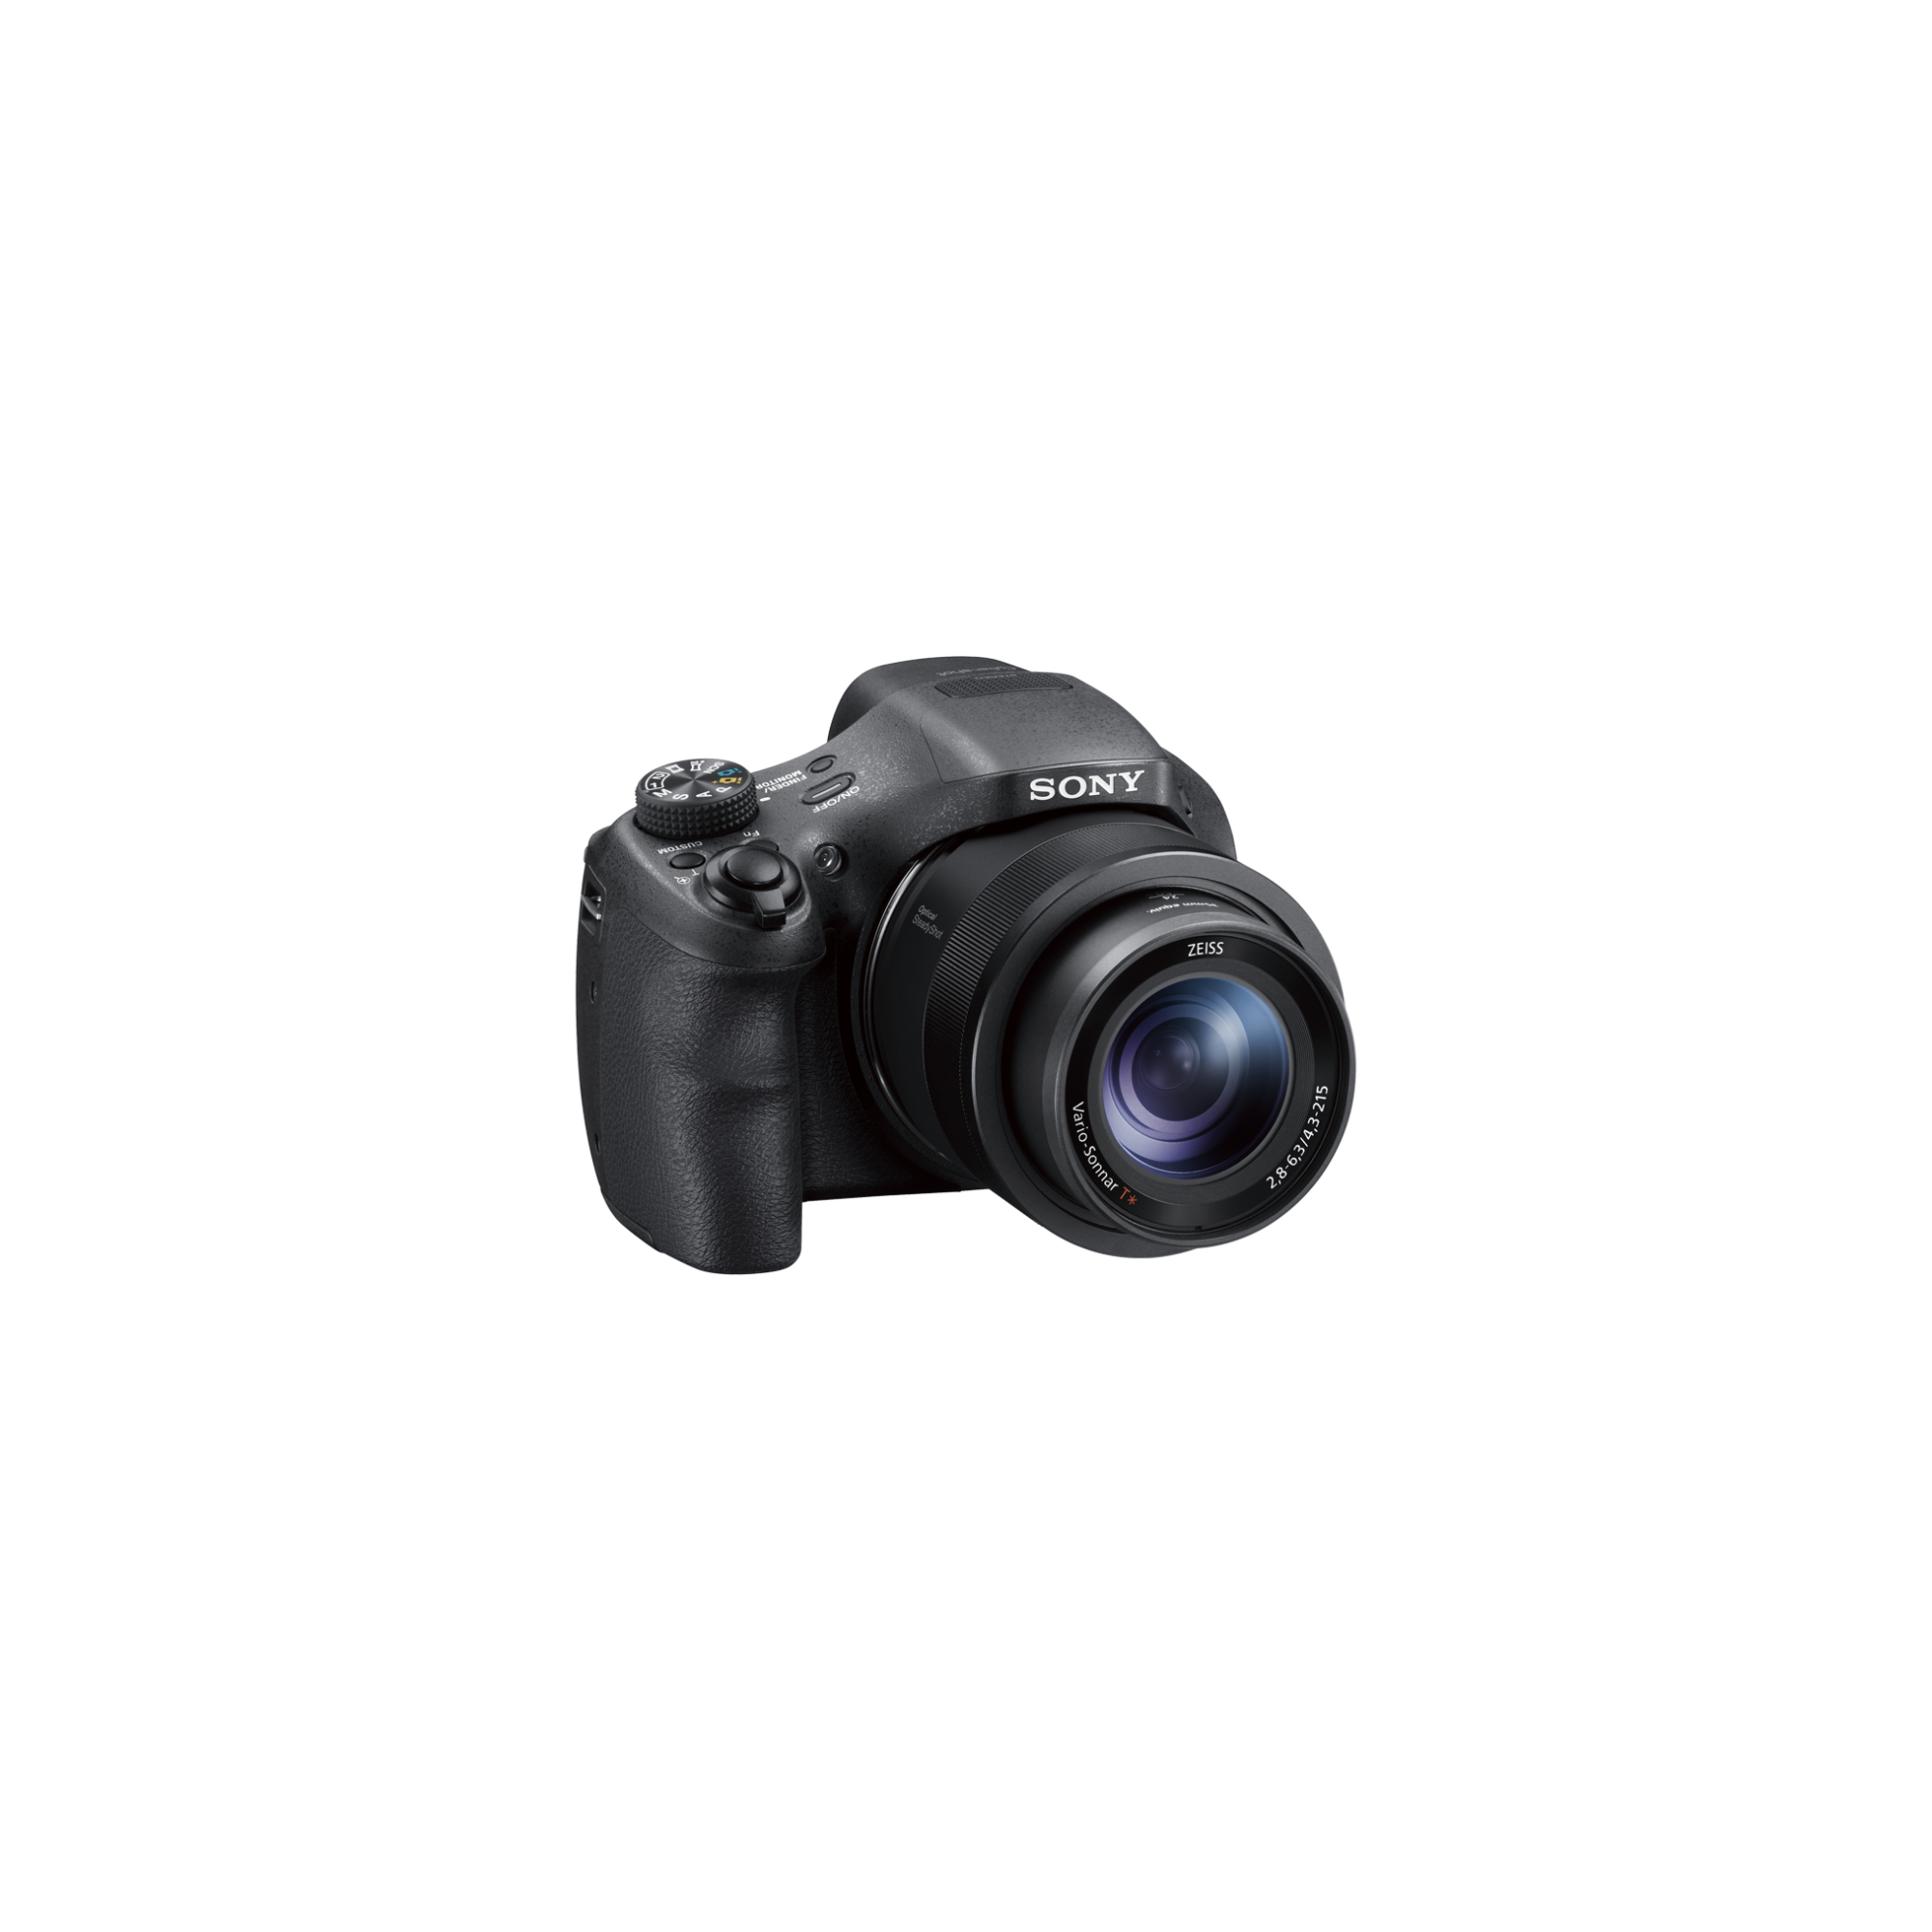 HX350 Compact Camera with 50x Optical Zoom, , hi-res